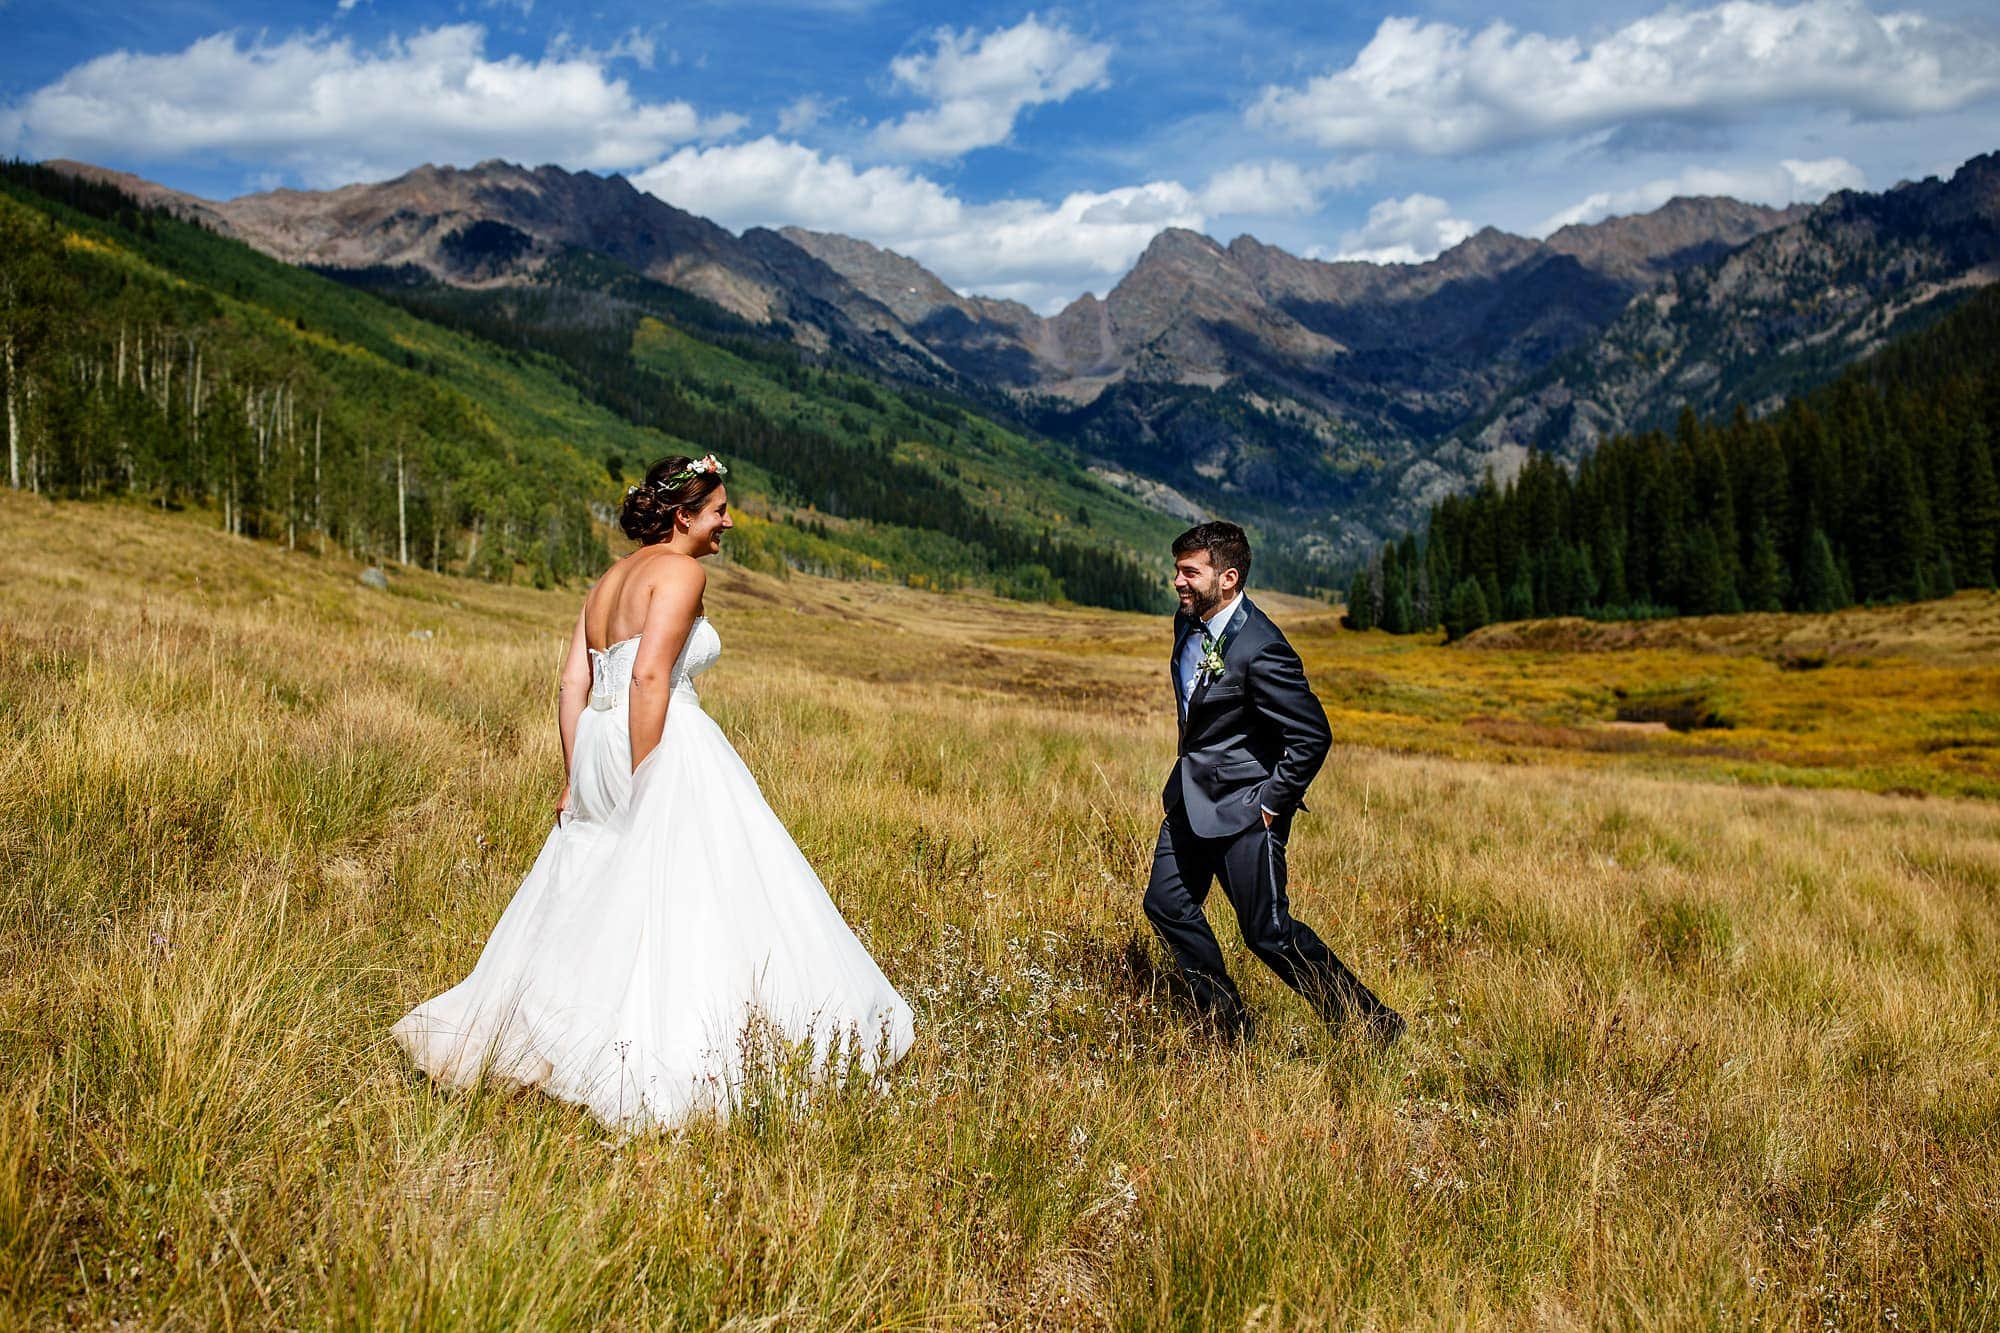 Piney River Ranch wedding   Vail, CO   Becky and Brian